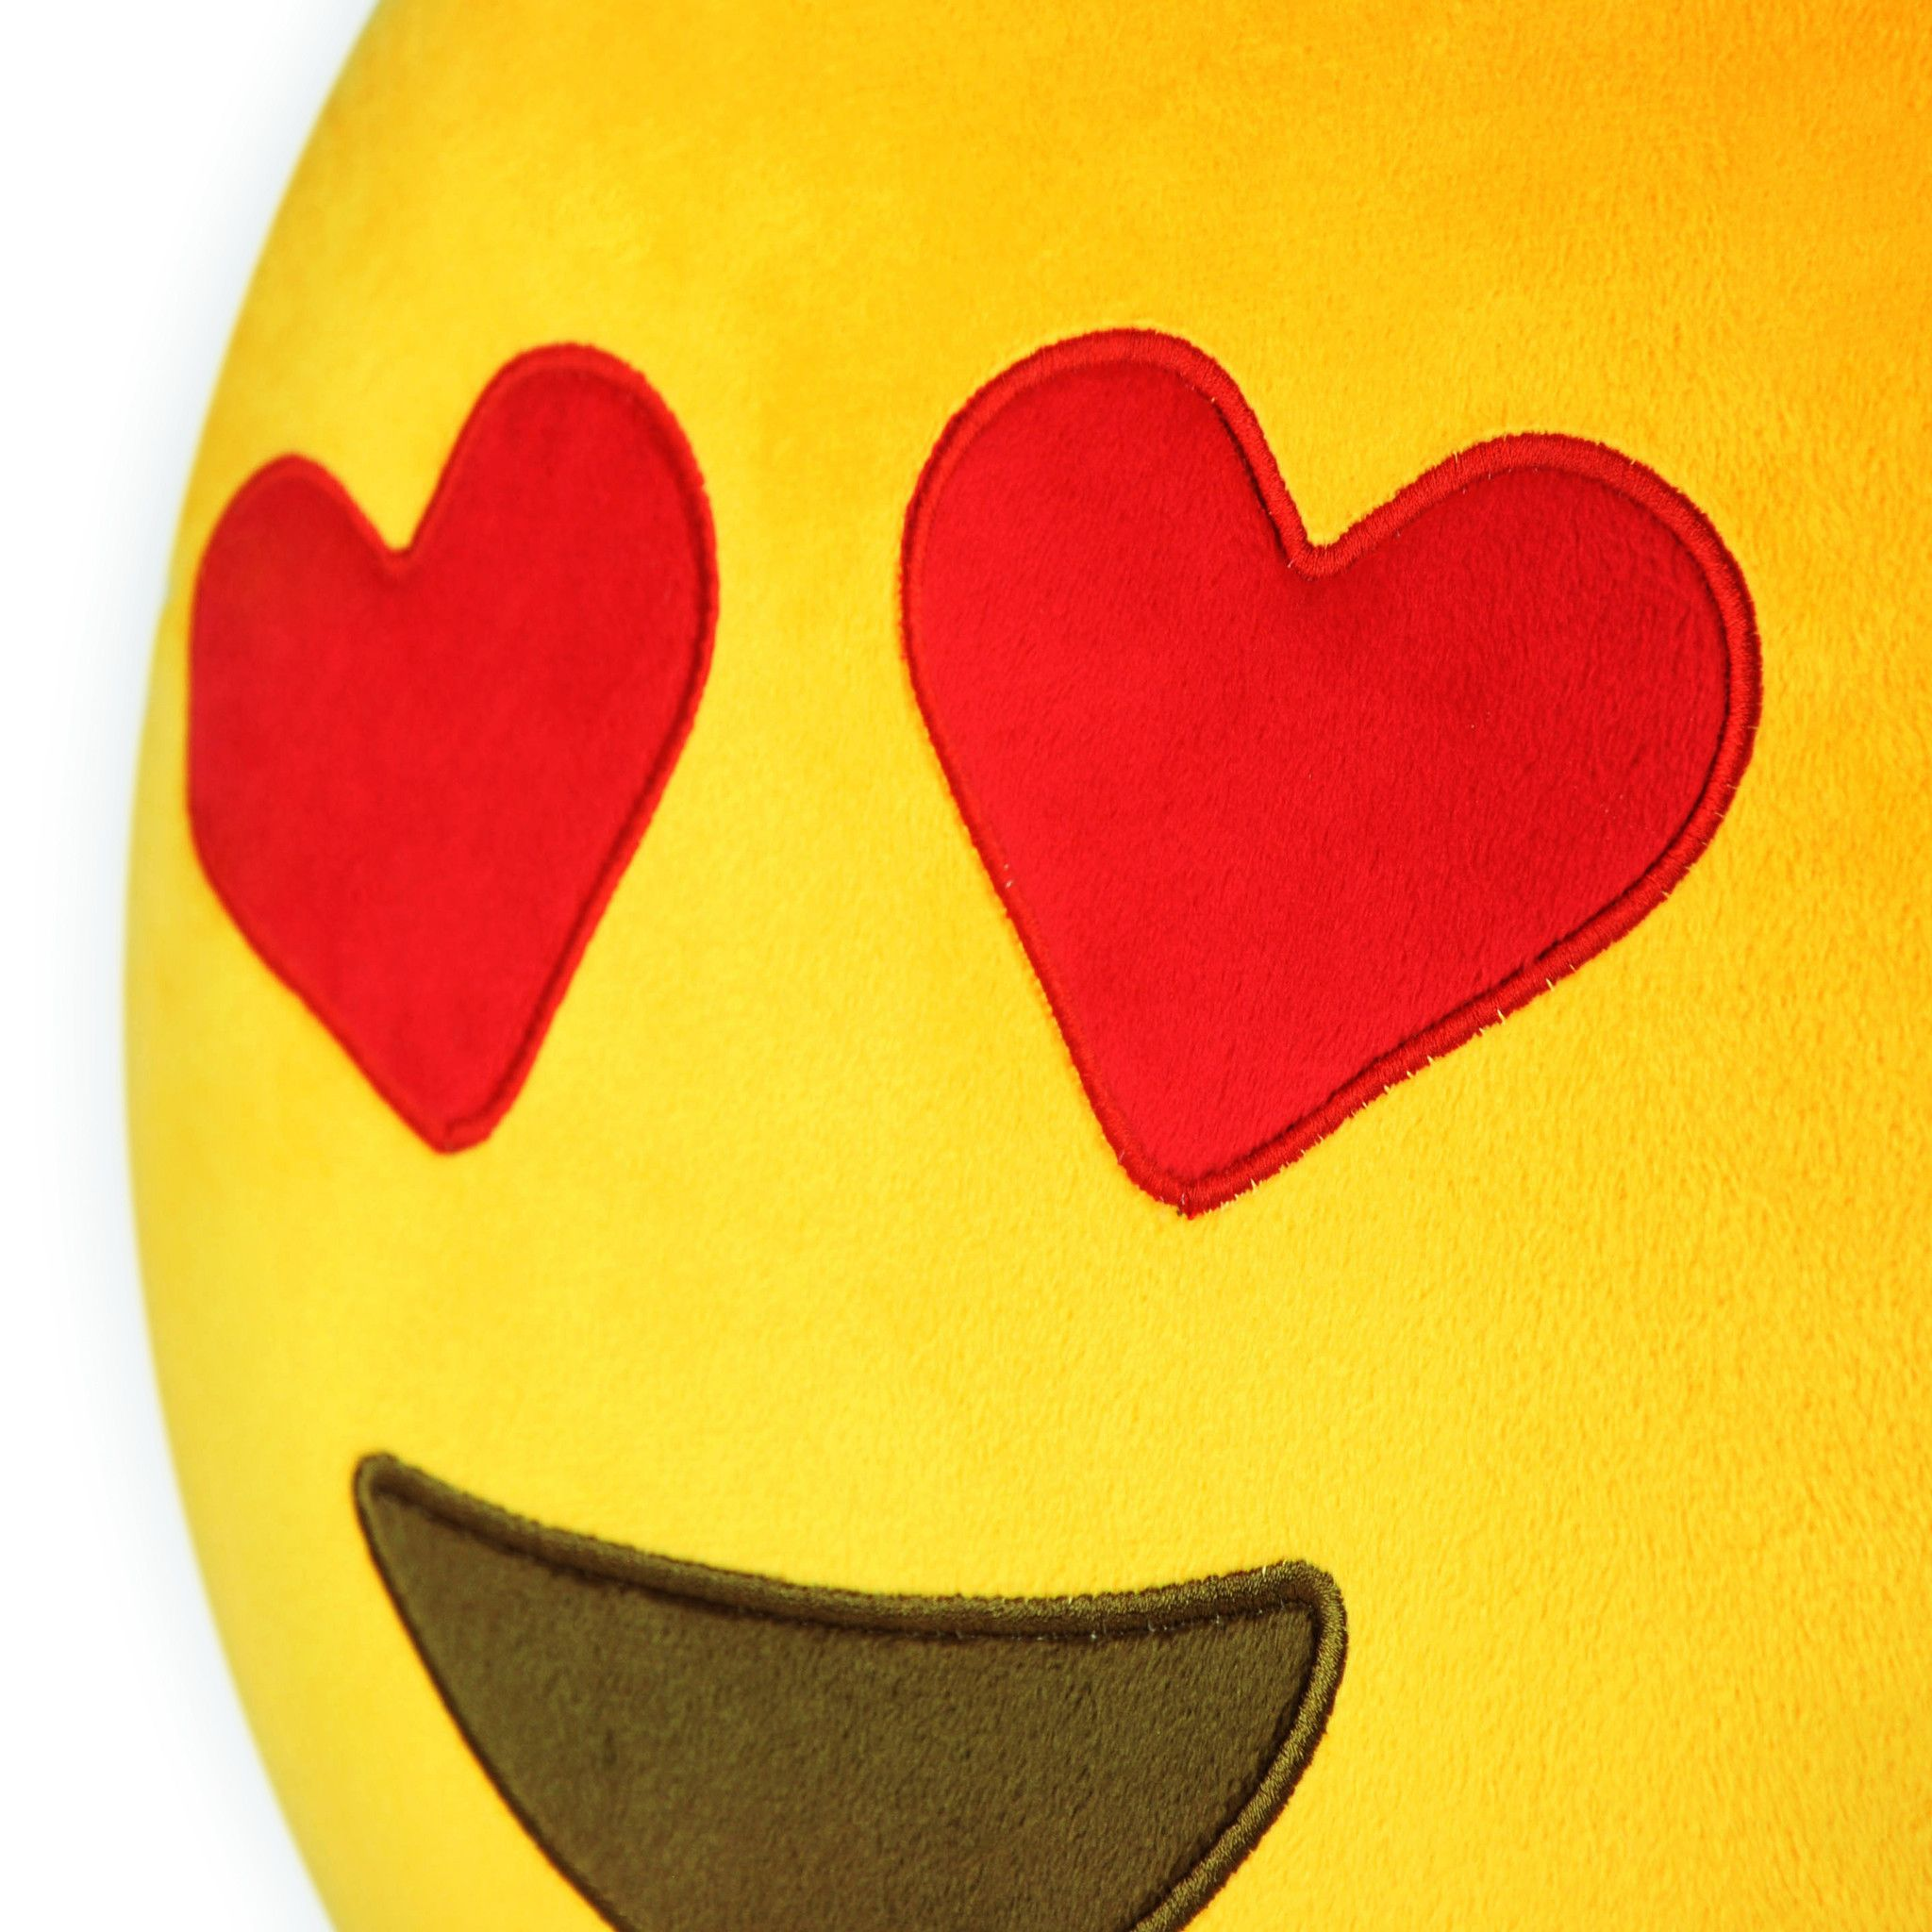 Hearts emoji pillow cool stuff pinterest heart emoji emoji